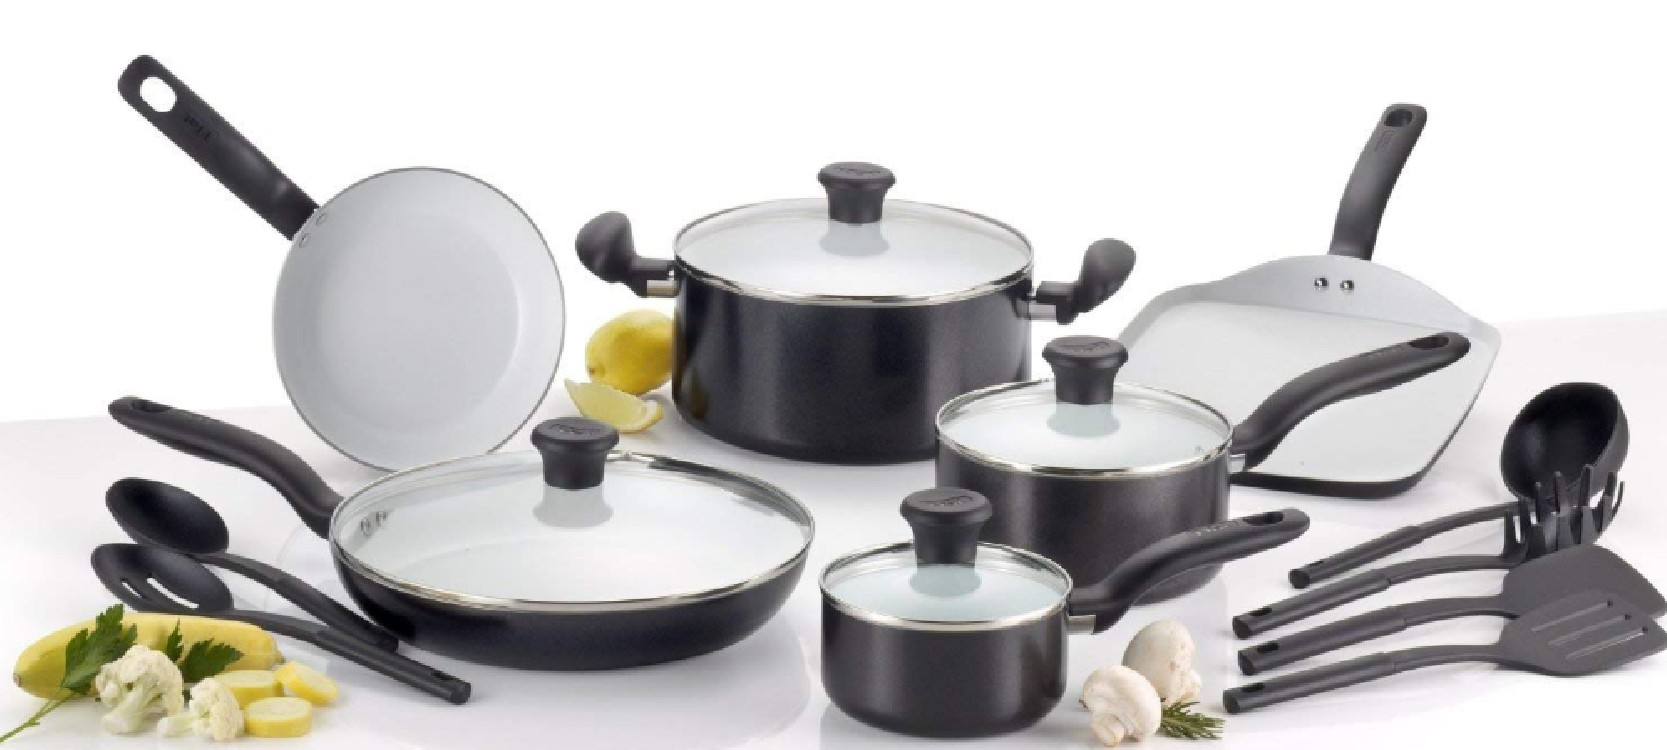 the full set of TFal ceramic kitchenware in nice looking